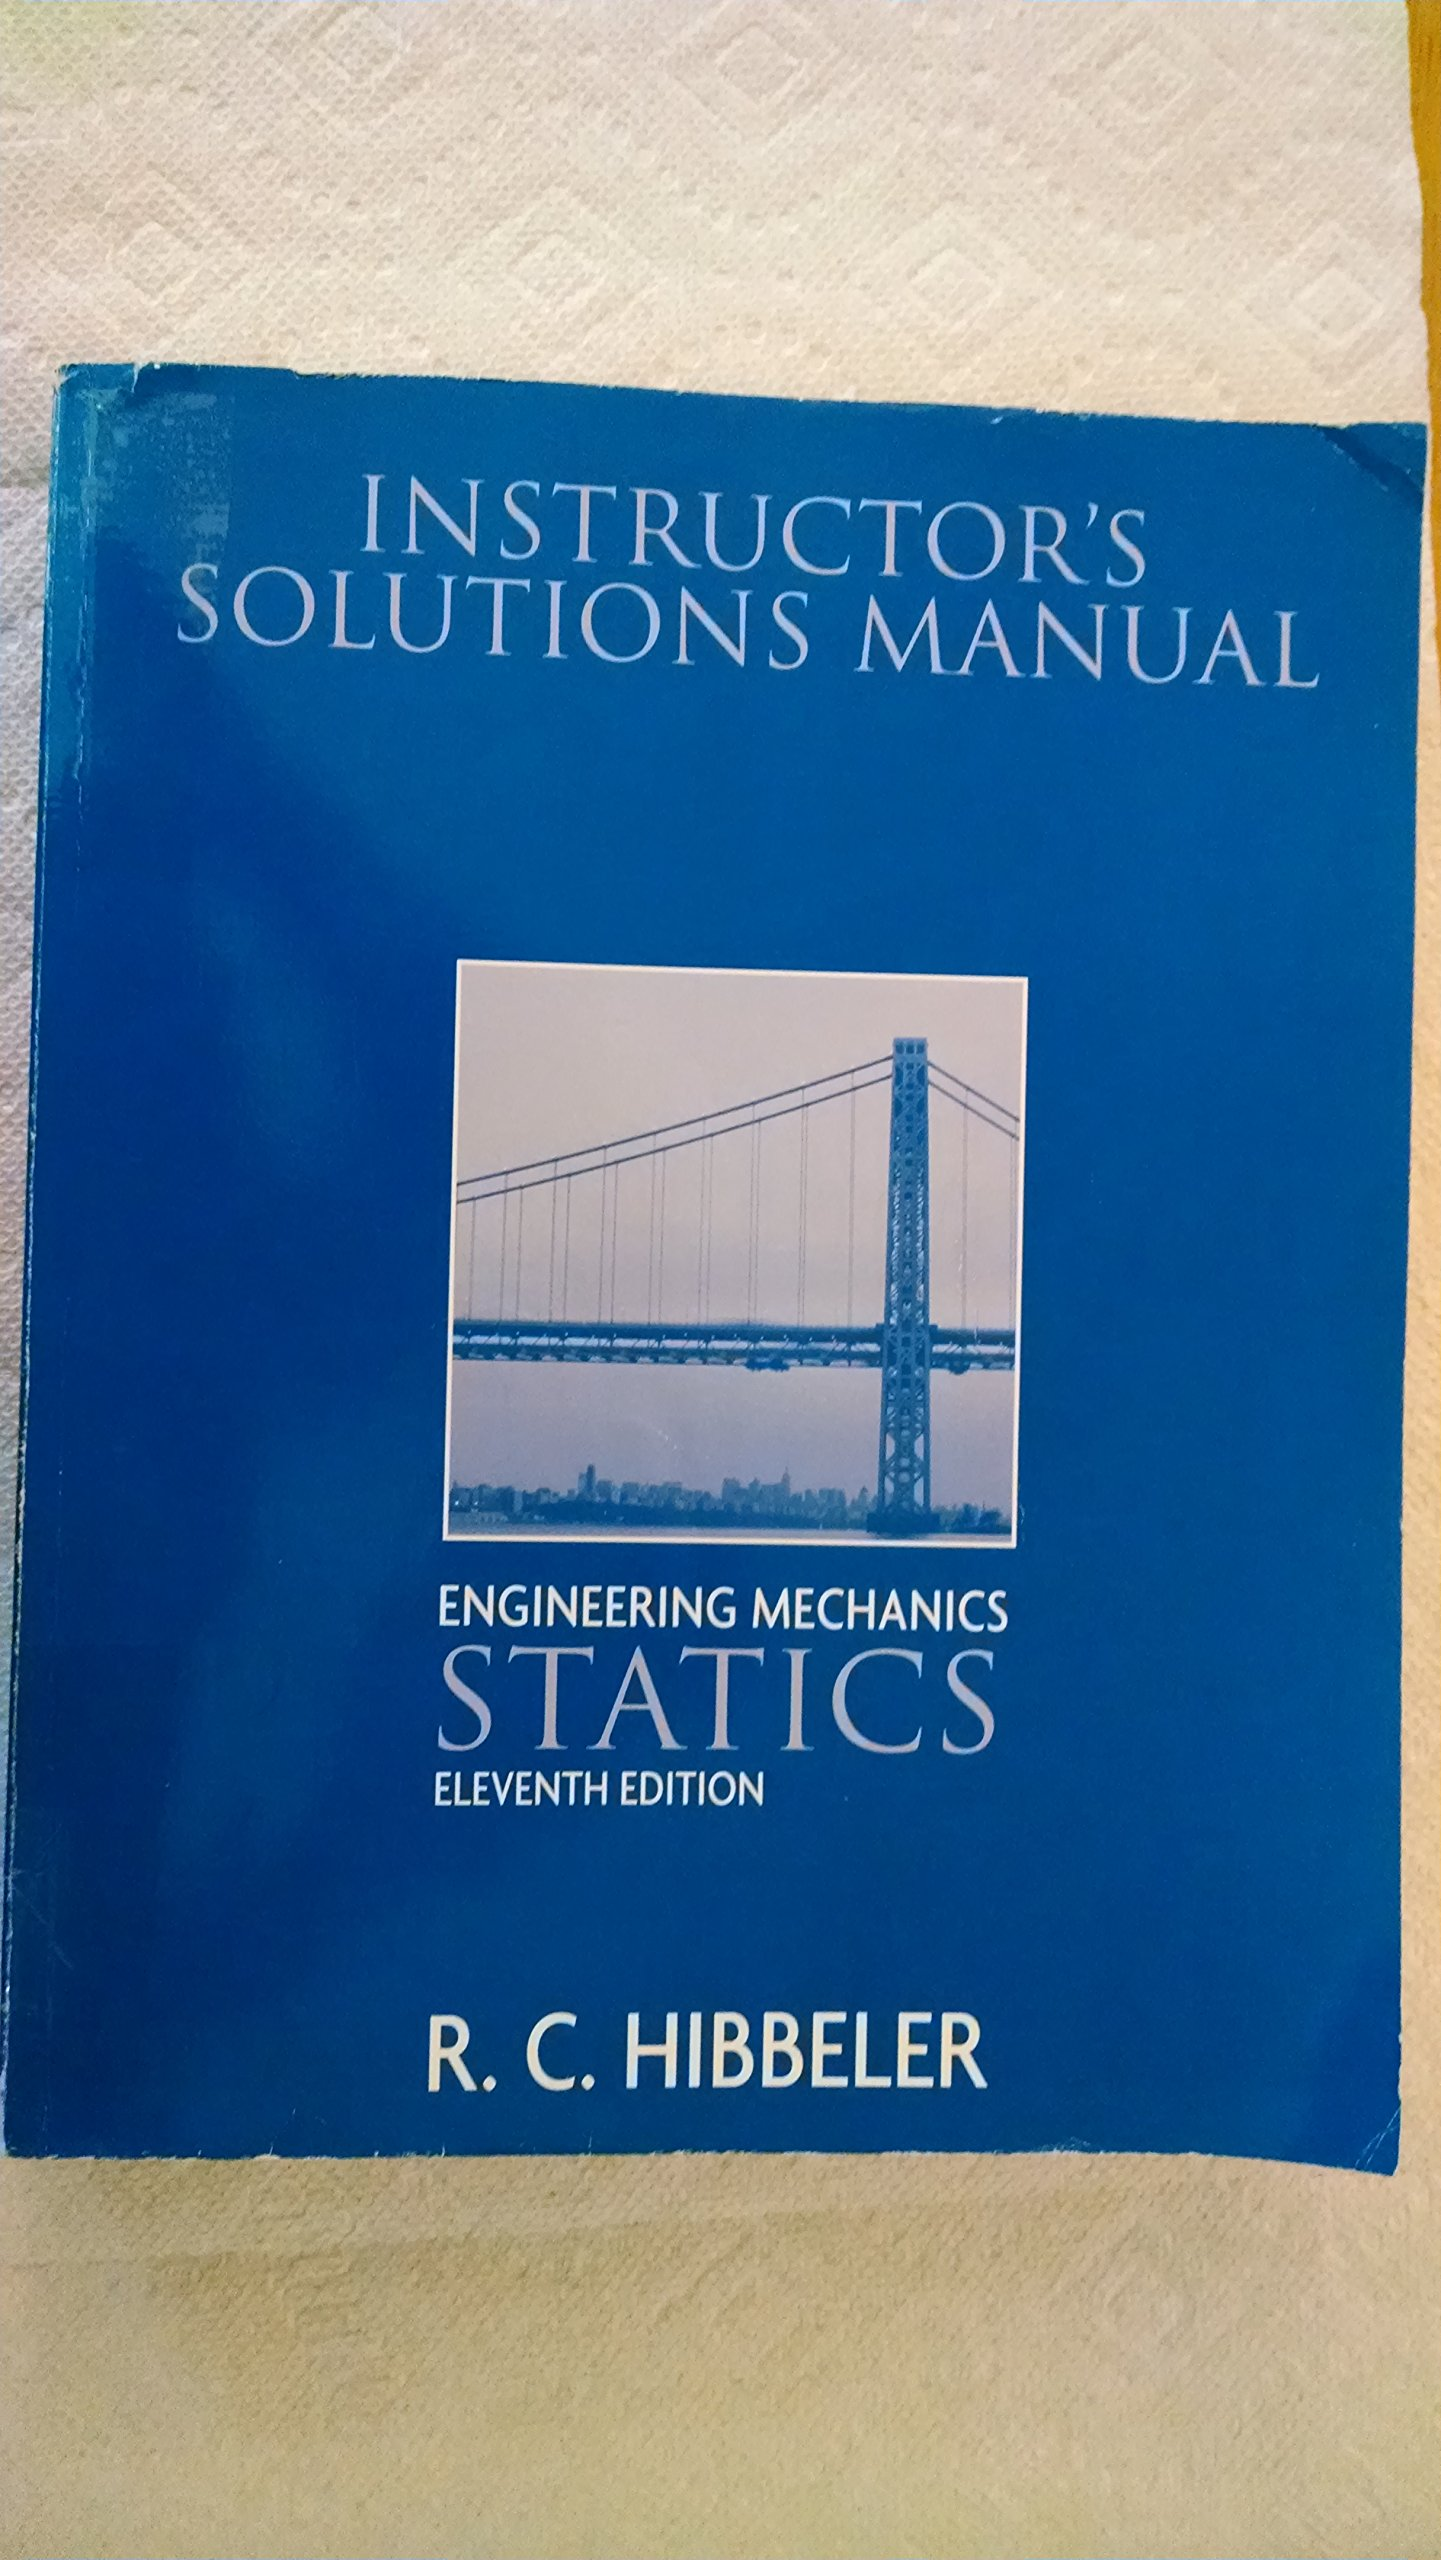 Instructor's Solutions Manual Engineering Mechanics Statics (11th Edition)  (VOLUME ONE ONLY): R. C. Hibbeler: Amazon.com: Books